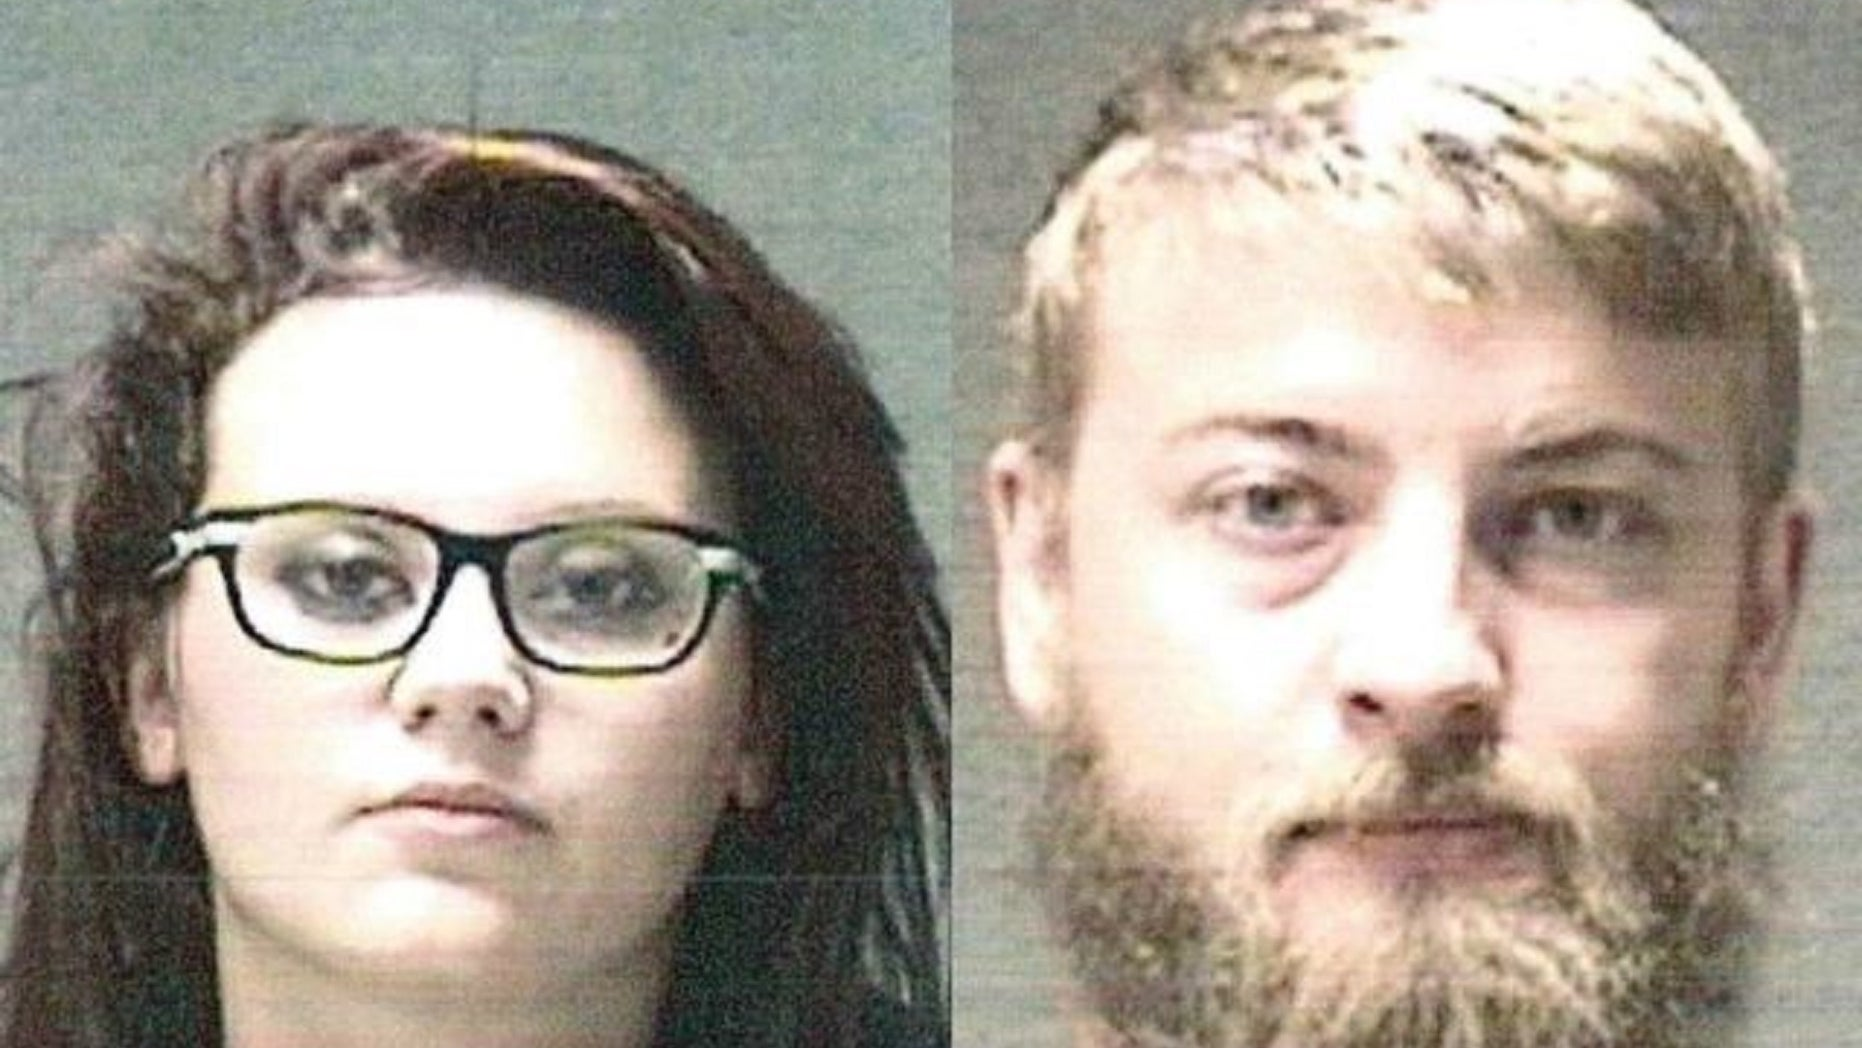 Parents Taylor Shively and Brady Shively were arrested Monday and charged with two counts of neglect of a dependent, authorities said.